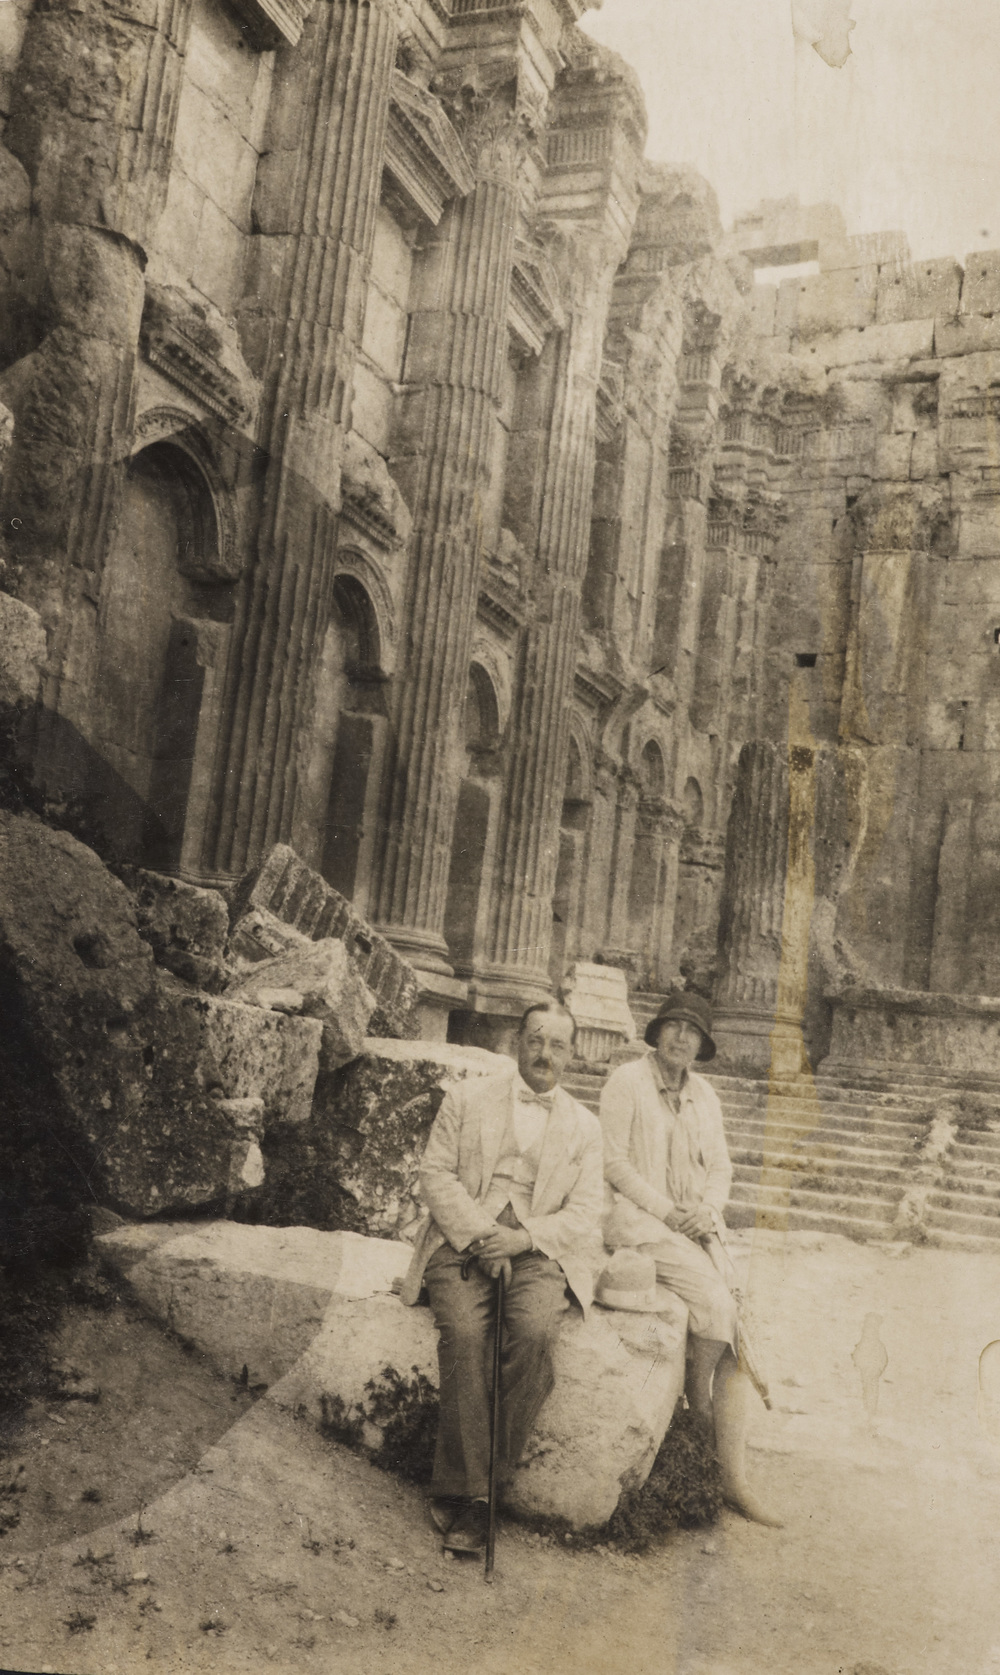 Stefana and Edwin Drower in the ruins of the Temple of Bacchus in Baalbek (Lebanon), c. 1920s